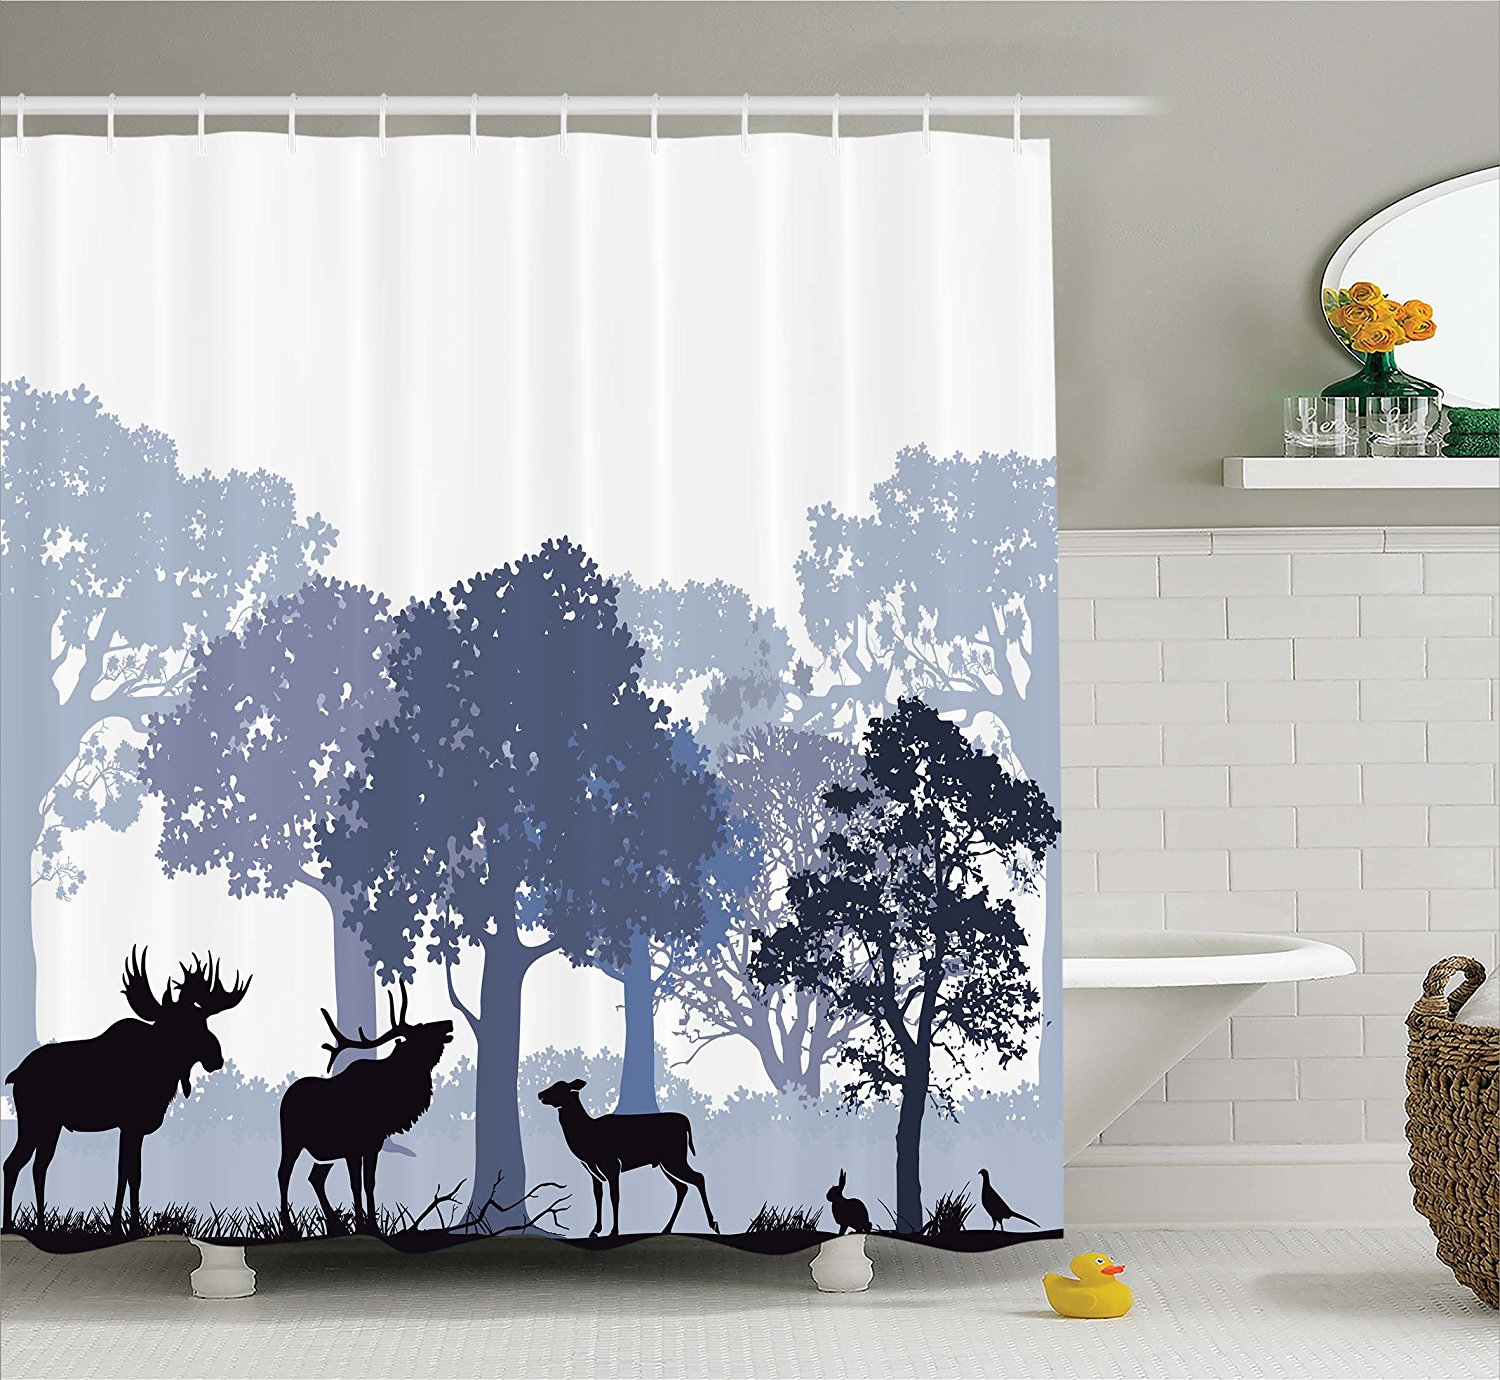 Moose Shower Curtain Set Gray Forest Design Abstract Woods North American Wild Animals Deer Hare Elk